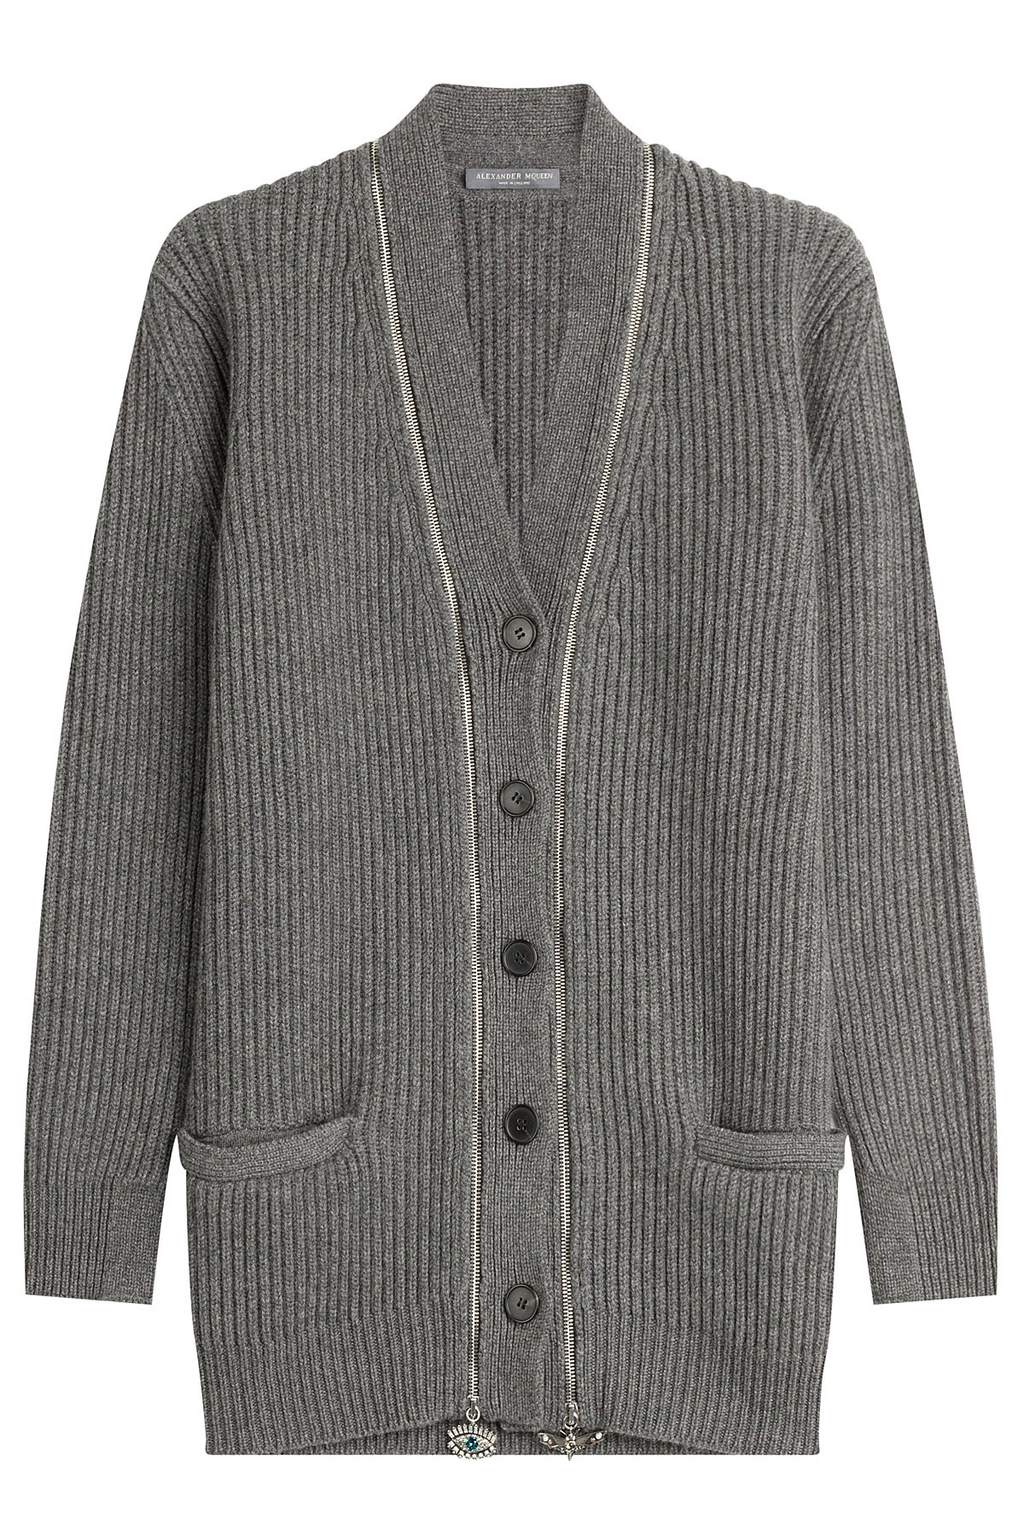 Cashmere Cardigan With Embellished Zippers - neckline: v-neck; pattern: plain; predominant colour: mid grey; occasions: casual; length: standard; style: standard; fit: standard fit; fibres: cashmere - 100%; sleeve length: long sleeve; sleeve style: standard; texture group: knits/crochet; pattern type: knitted - fine stitch; wardrobe: investment; season: a/w 2016